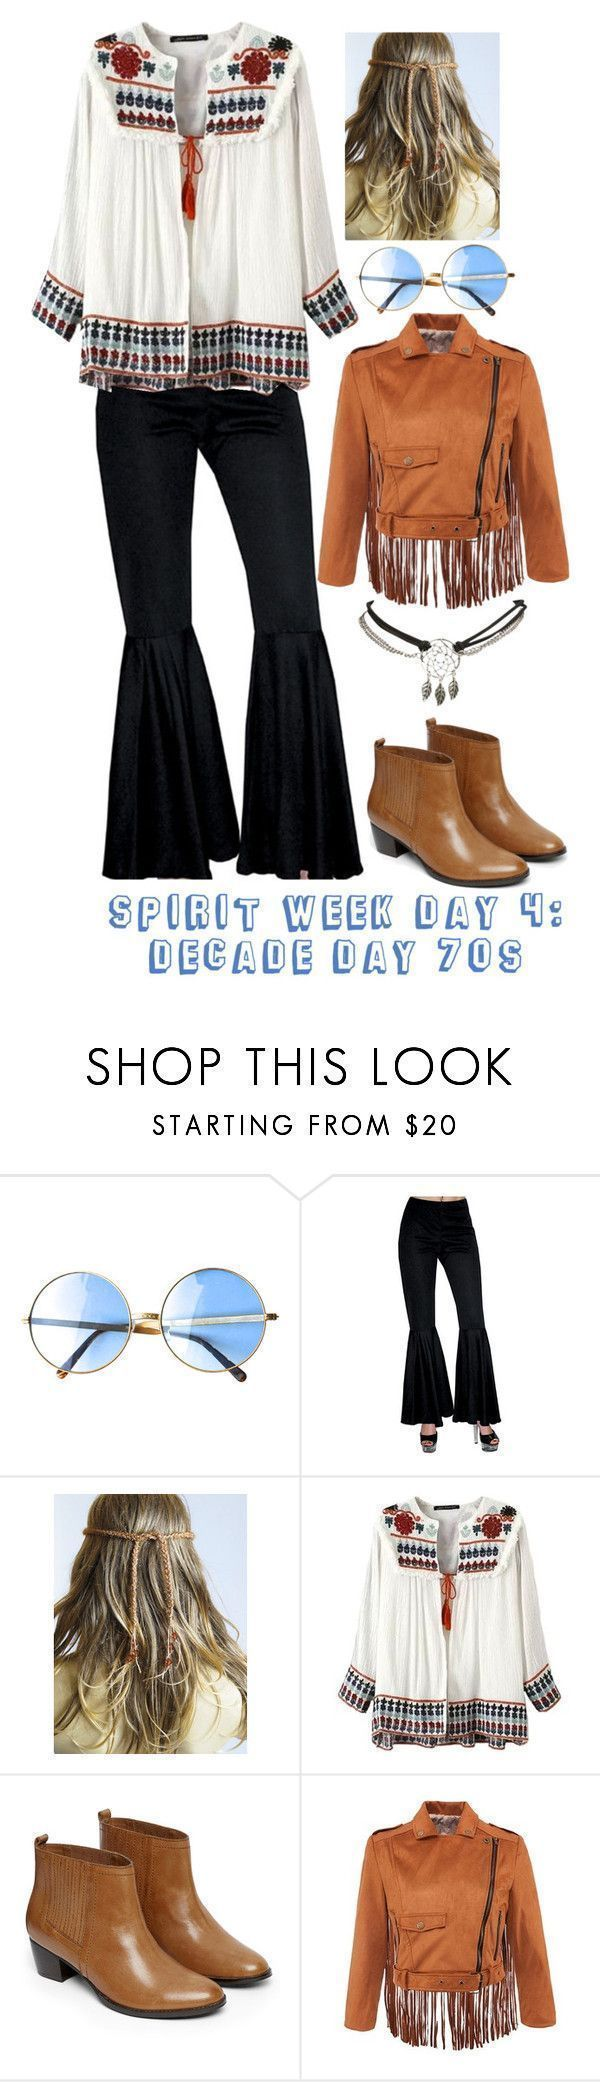 Spirit week day 4: Decade Day 70s by nialls-princess-megan on Polyvore featuring... #characterdayspiritweek #decadedayoutfits Spirit week day 4: Decade Day 70s by nialls-princess-megan on Polyvore featuring... #characterdayspiritweek #decadedayoutfits Spirit week day 4: Decade Day 70s by nialls-princess-megan on Polyvore featuring... #characterdayspiritweek #decadedayoutfits Spirit week day 4: Decade Day 70s by nialls-princess-megan on Polyvore featuring... #characterdayspiritweek #characterdays #decadedayoutfits